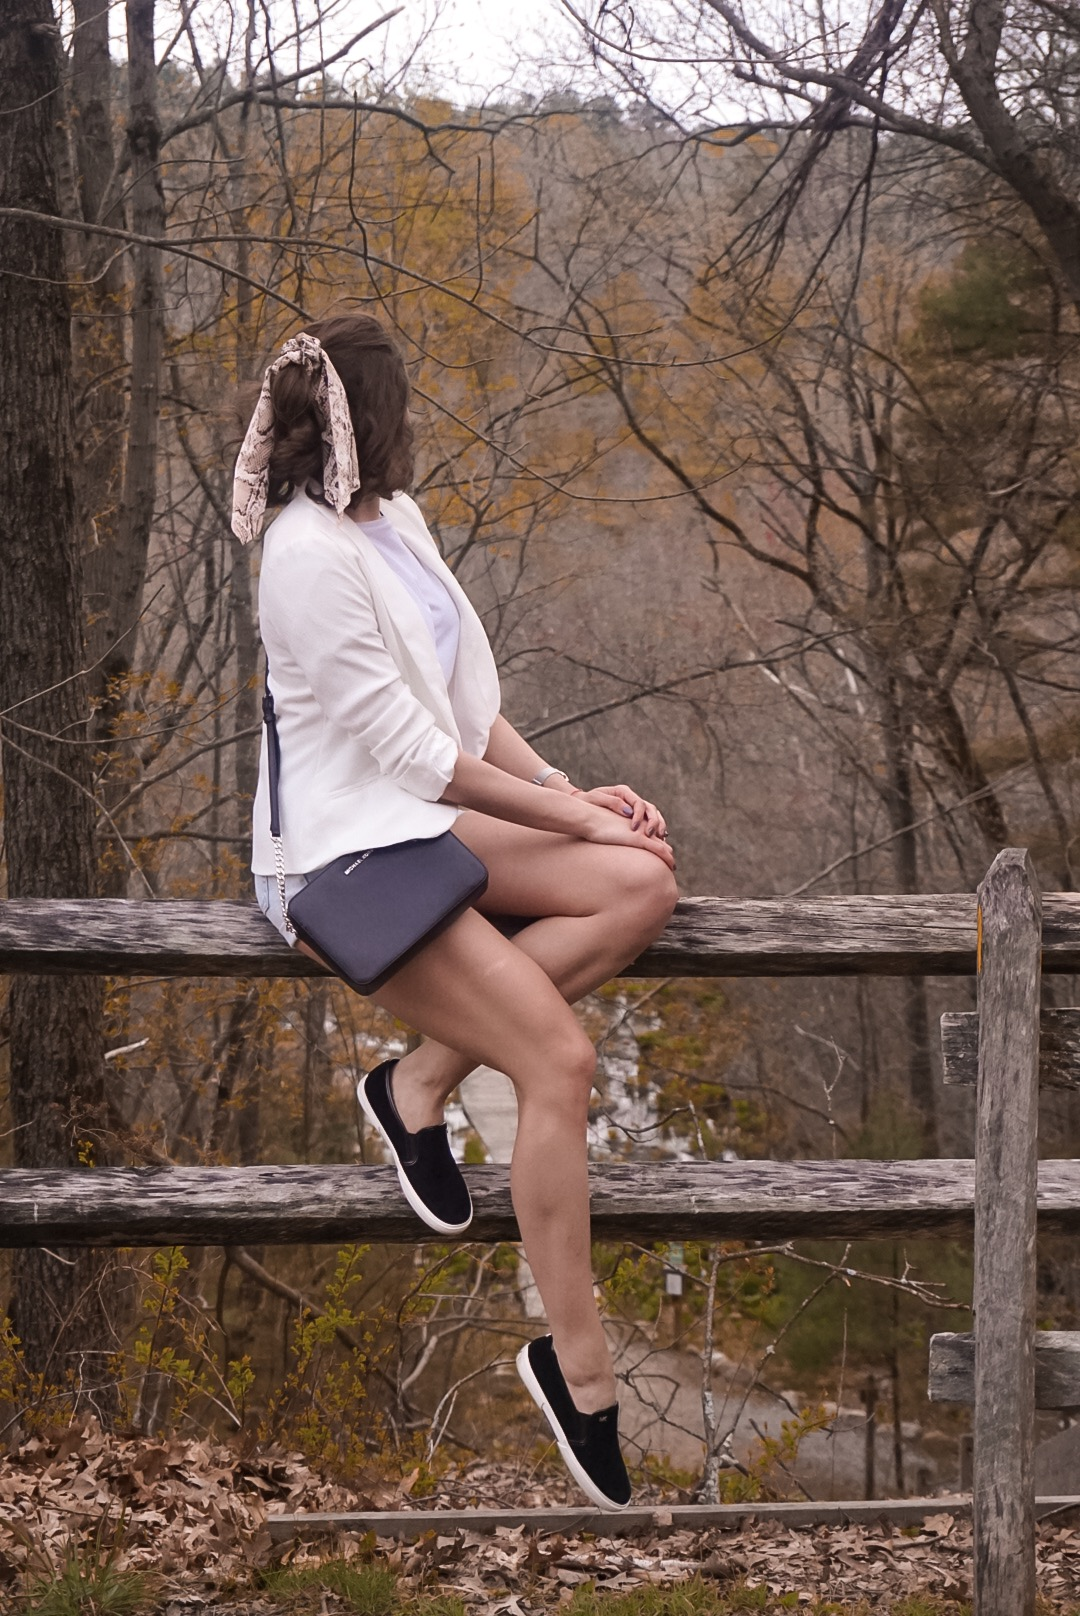 A fashion blogger posing in a forest, wearing a white crop top, white blazer, light denim shorts, black Michael Kors bag, and black Michael Kors slip ons.